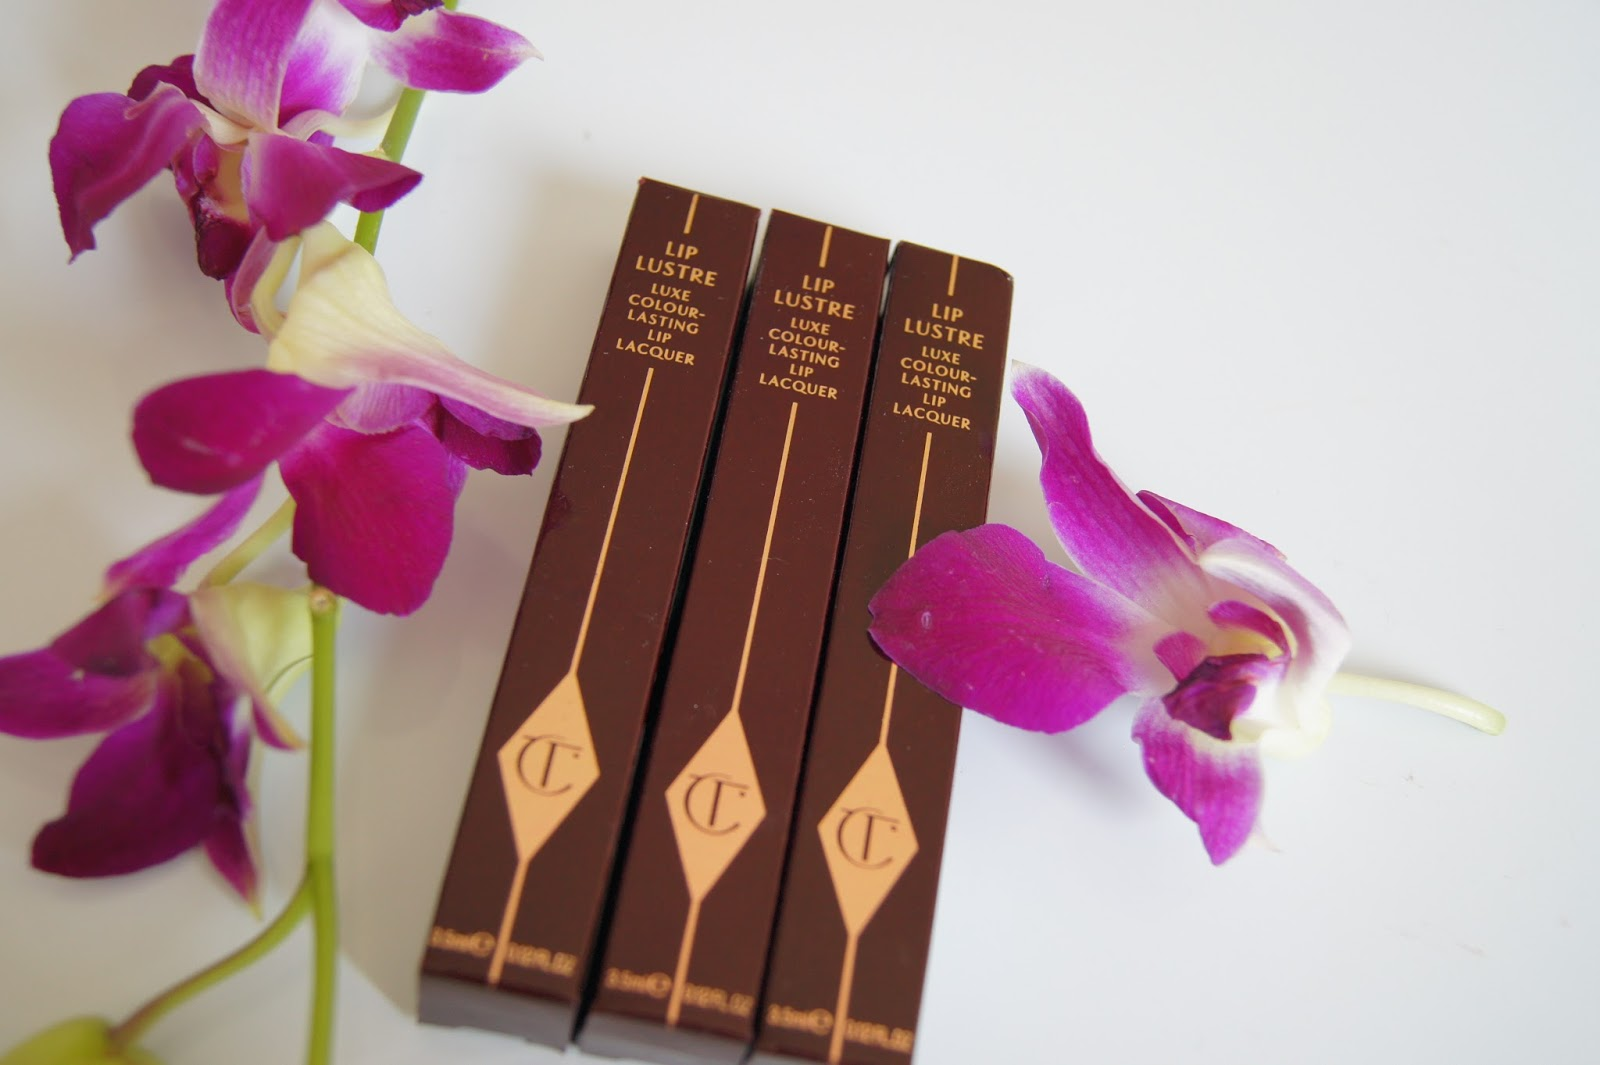 Charlotte Tilbury Lip Lustre review